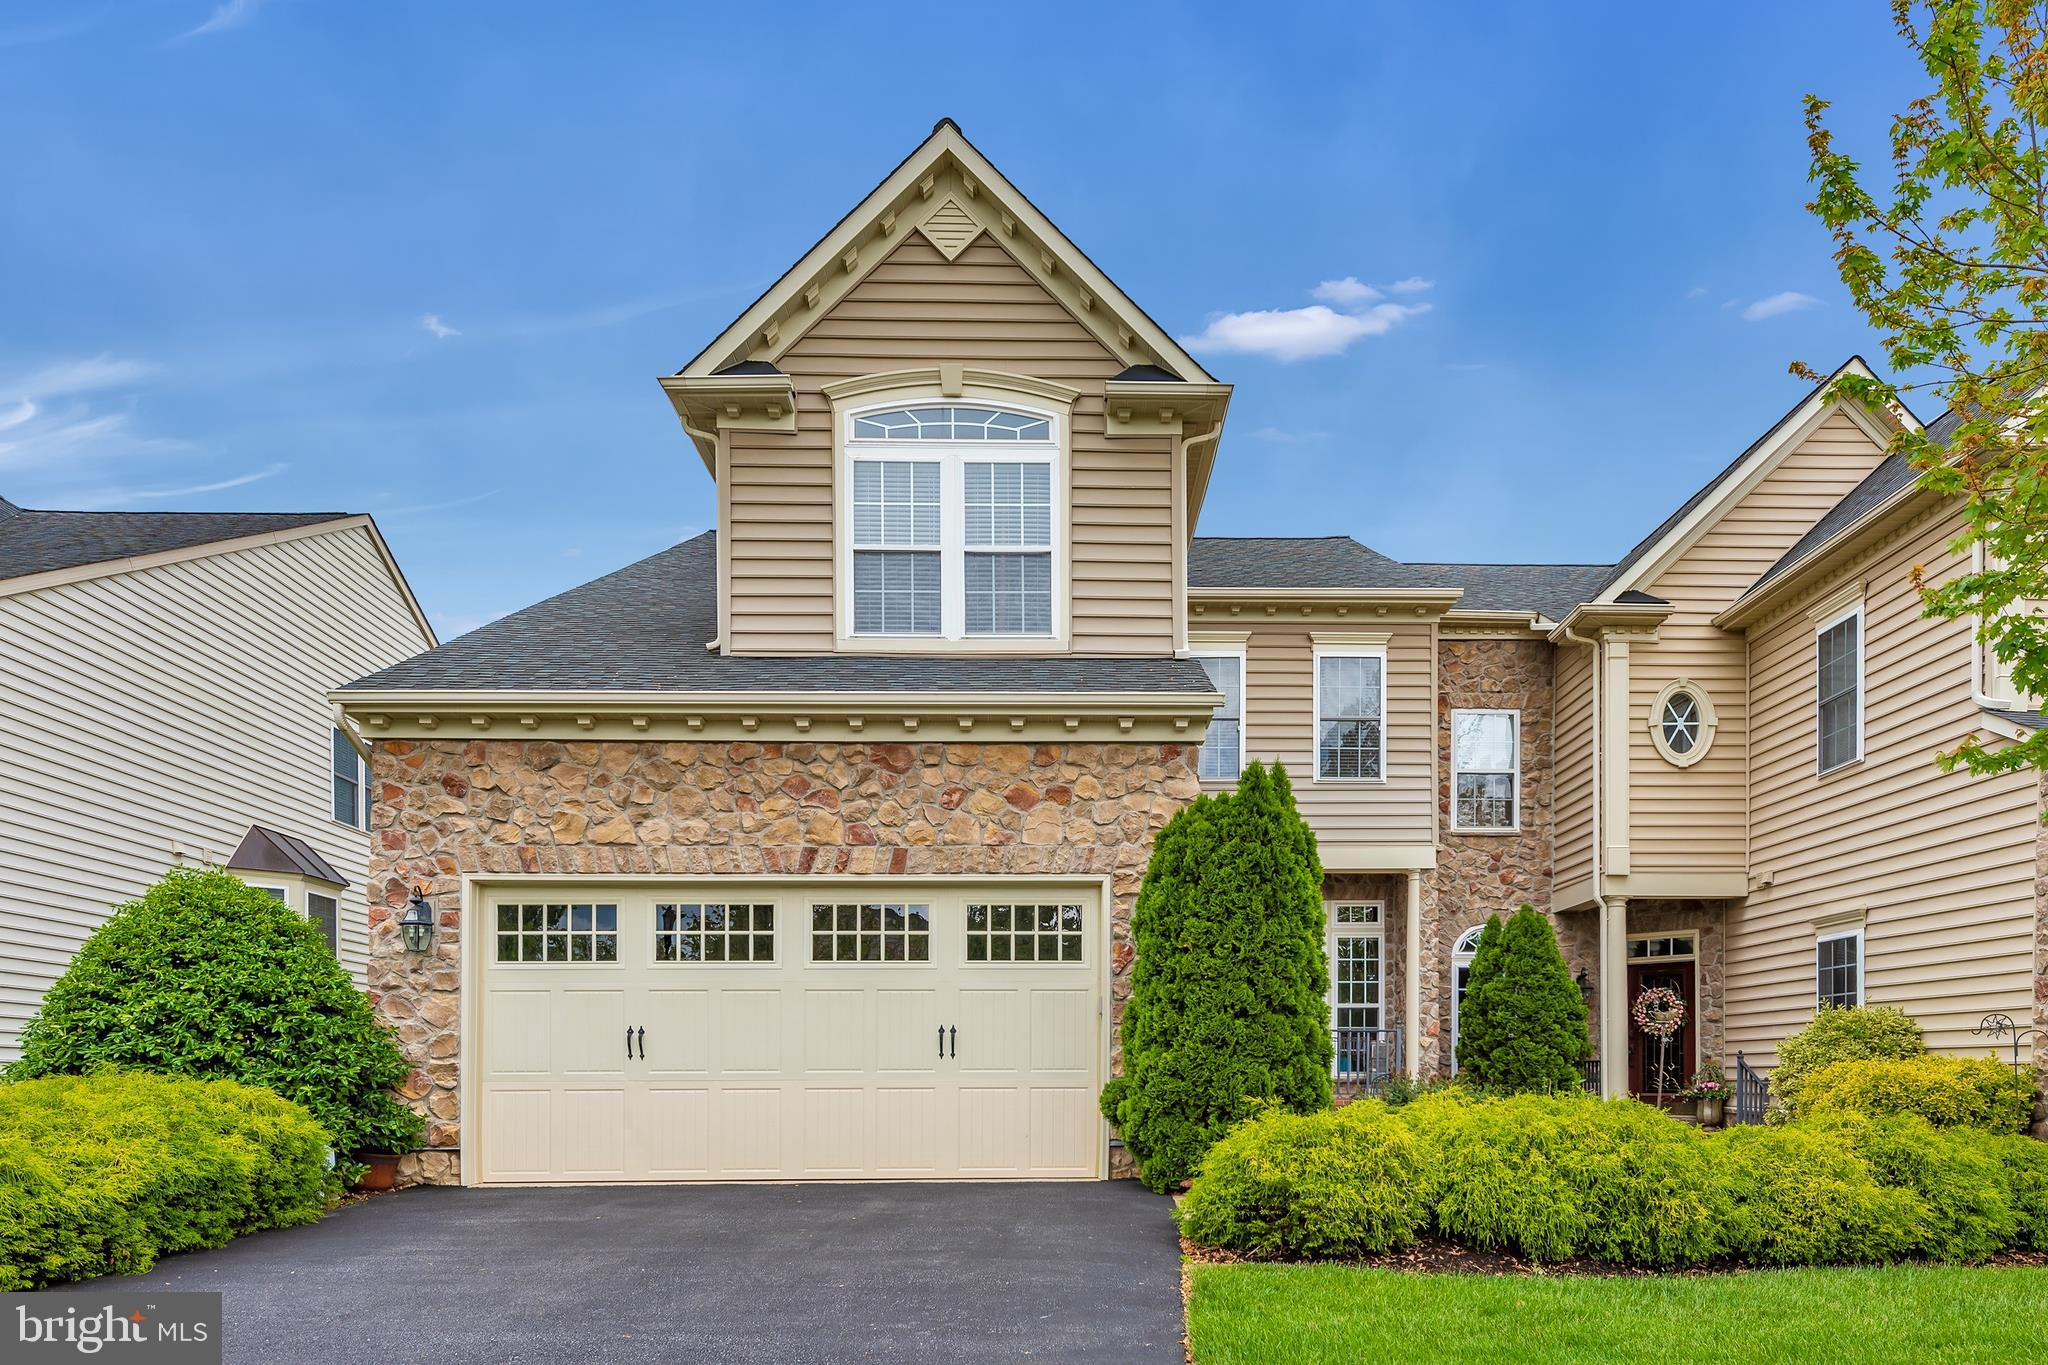 11082 CHAMBERS COURT 114, WOODSTOCK, MD 21163